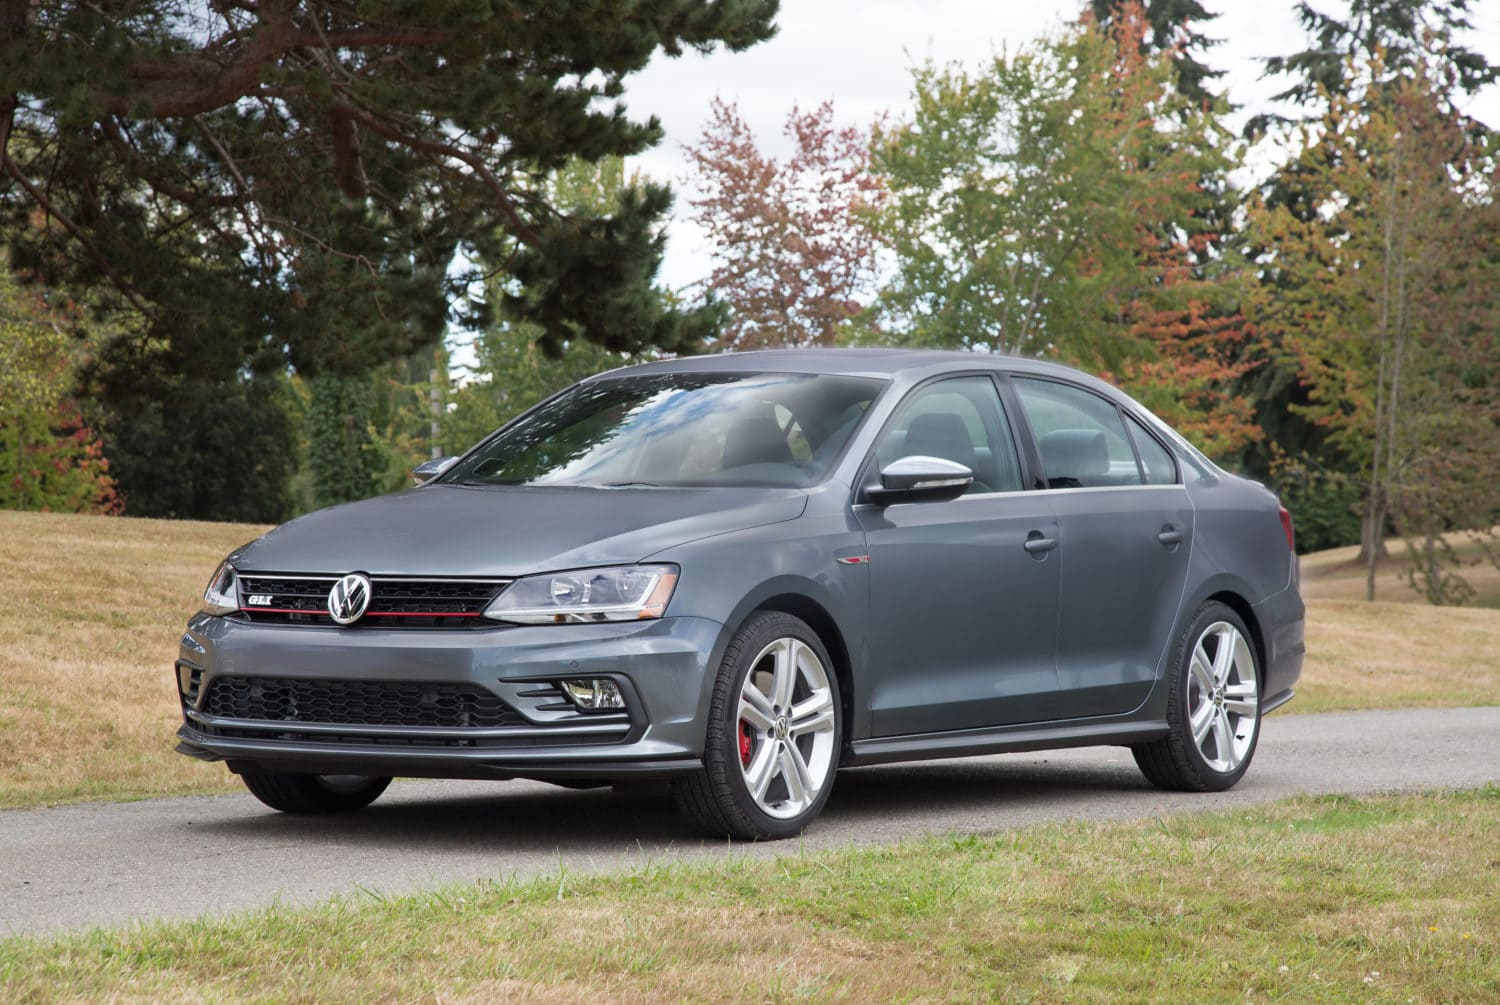 2017 Volkswagen Jetta GLI Fun, Peppy And Economical ...